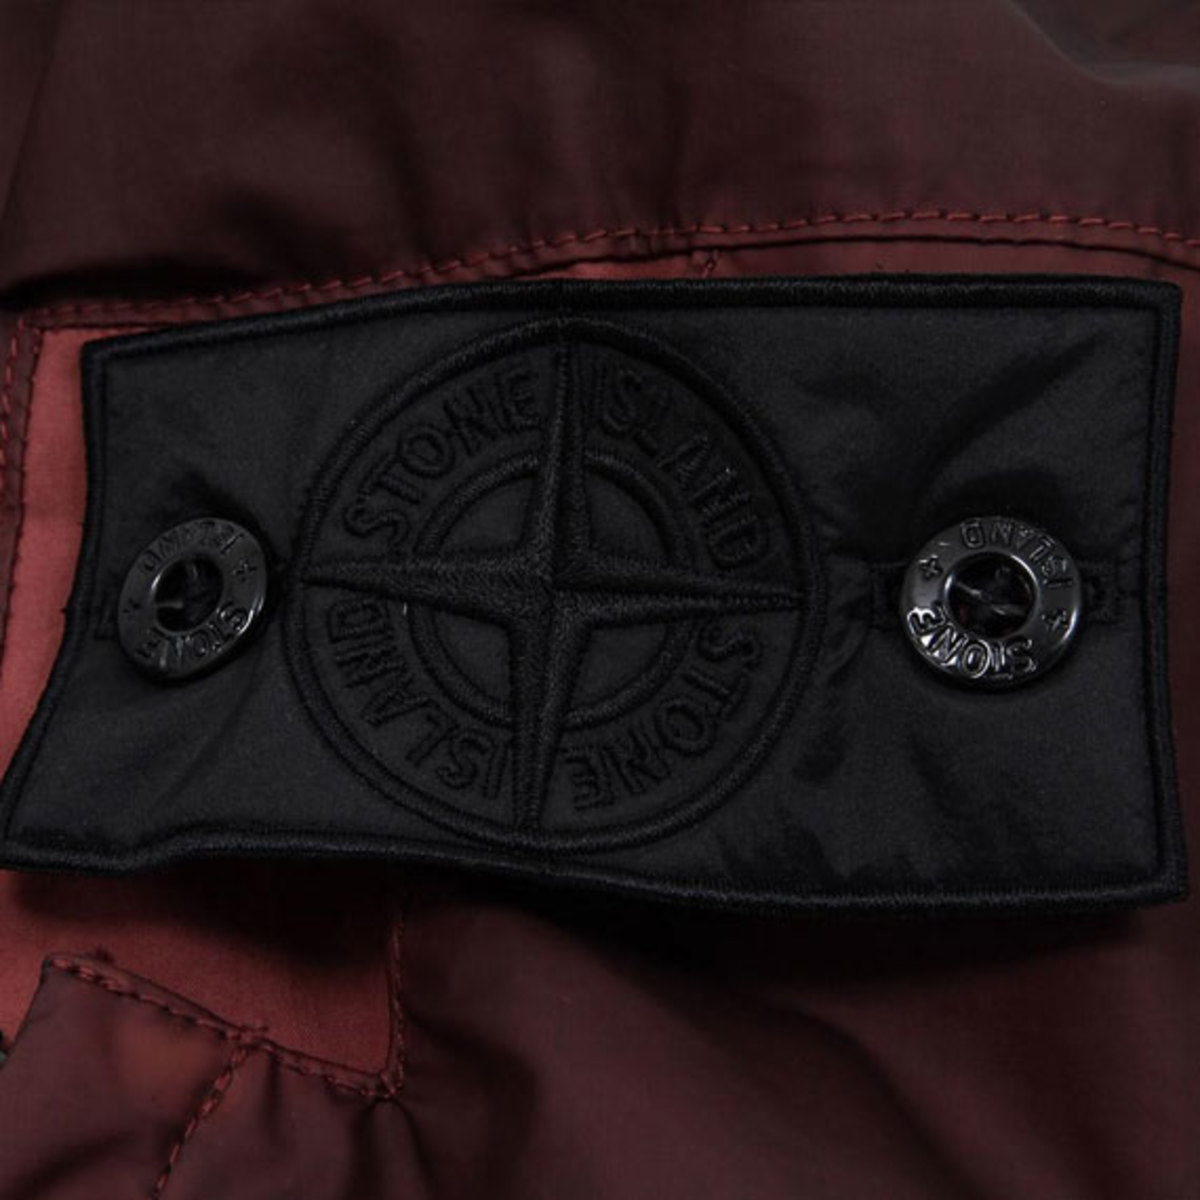 stone-island-shadow-project-gommato-r-bomber-jacket-09